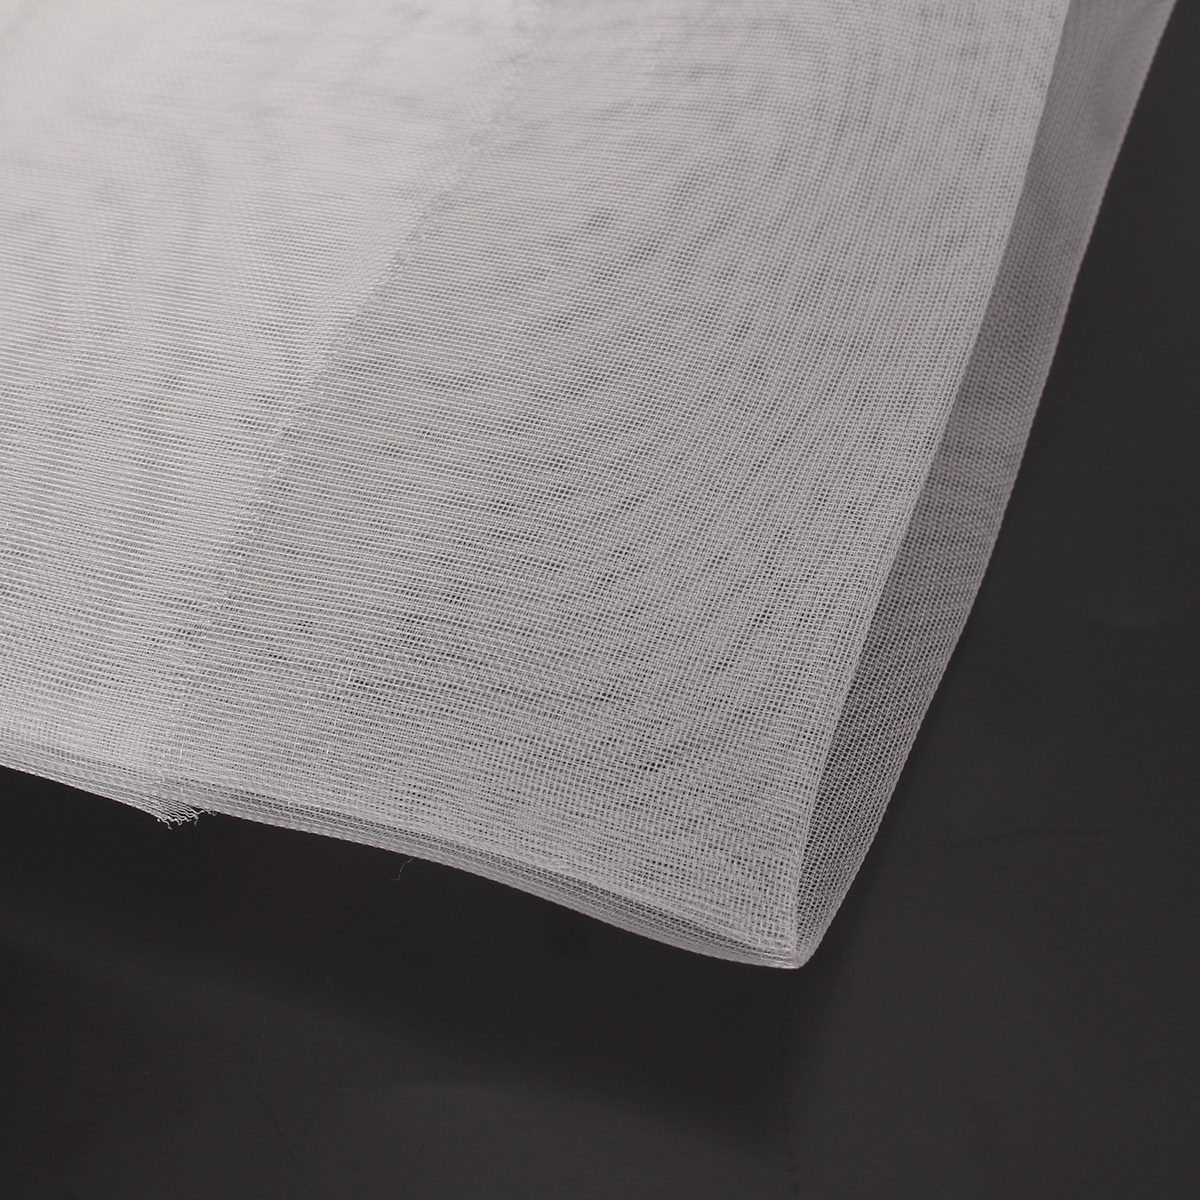 90x127cm Polyester 40 Mesh Filter Water Filtration Woven Wire